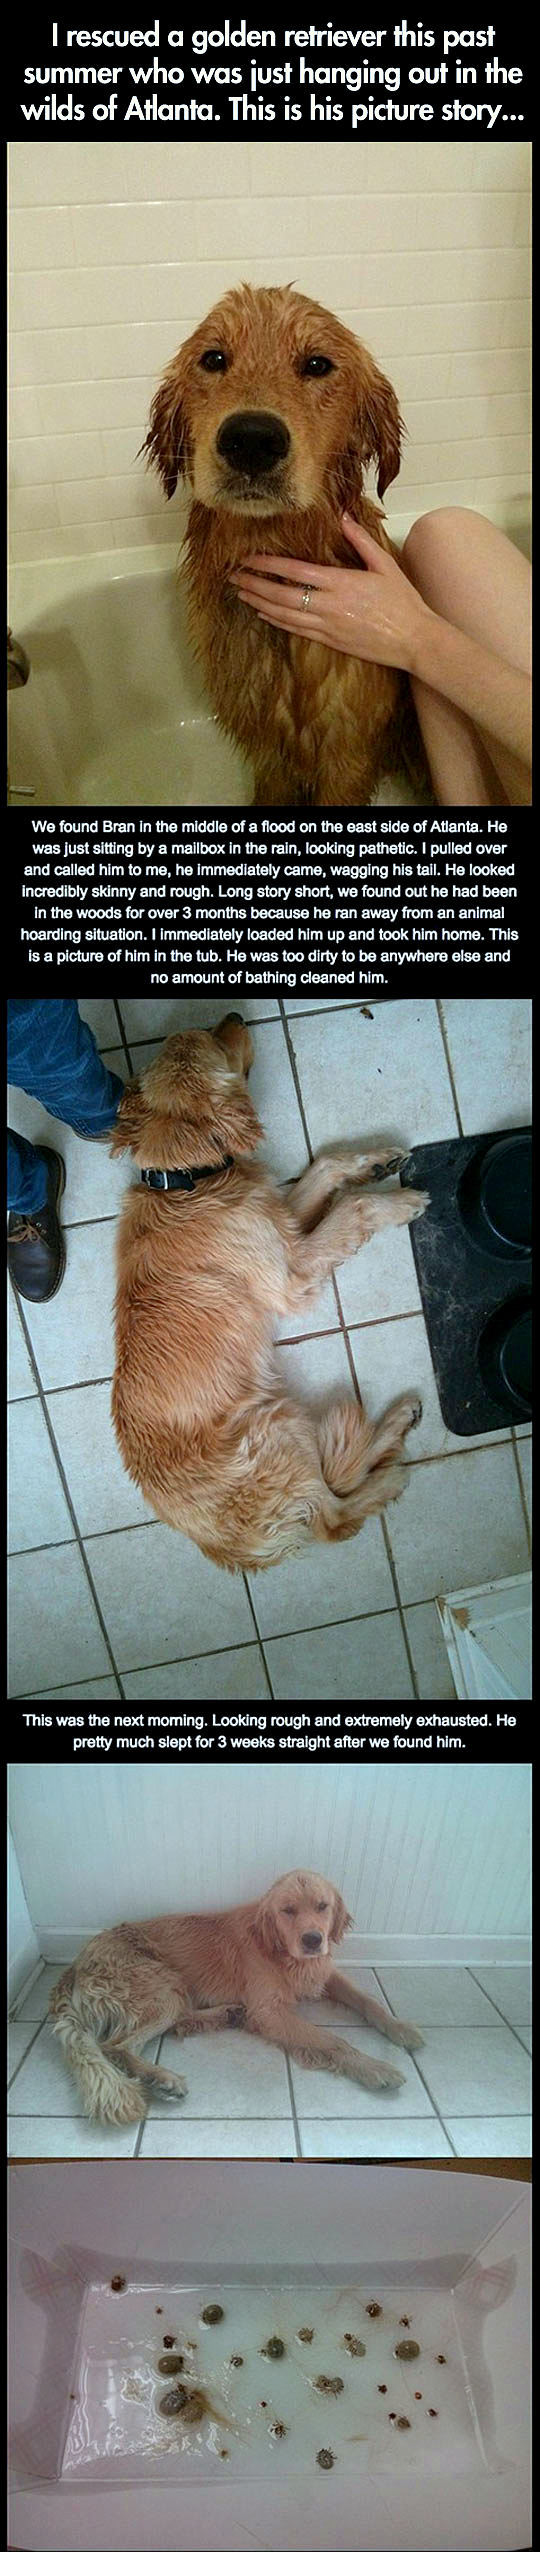 5.3.16 - Photo Journey of a Dog Rescued During a Flood1